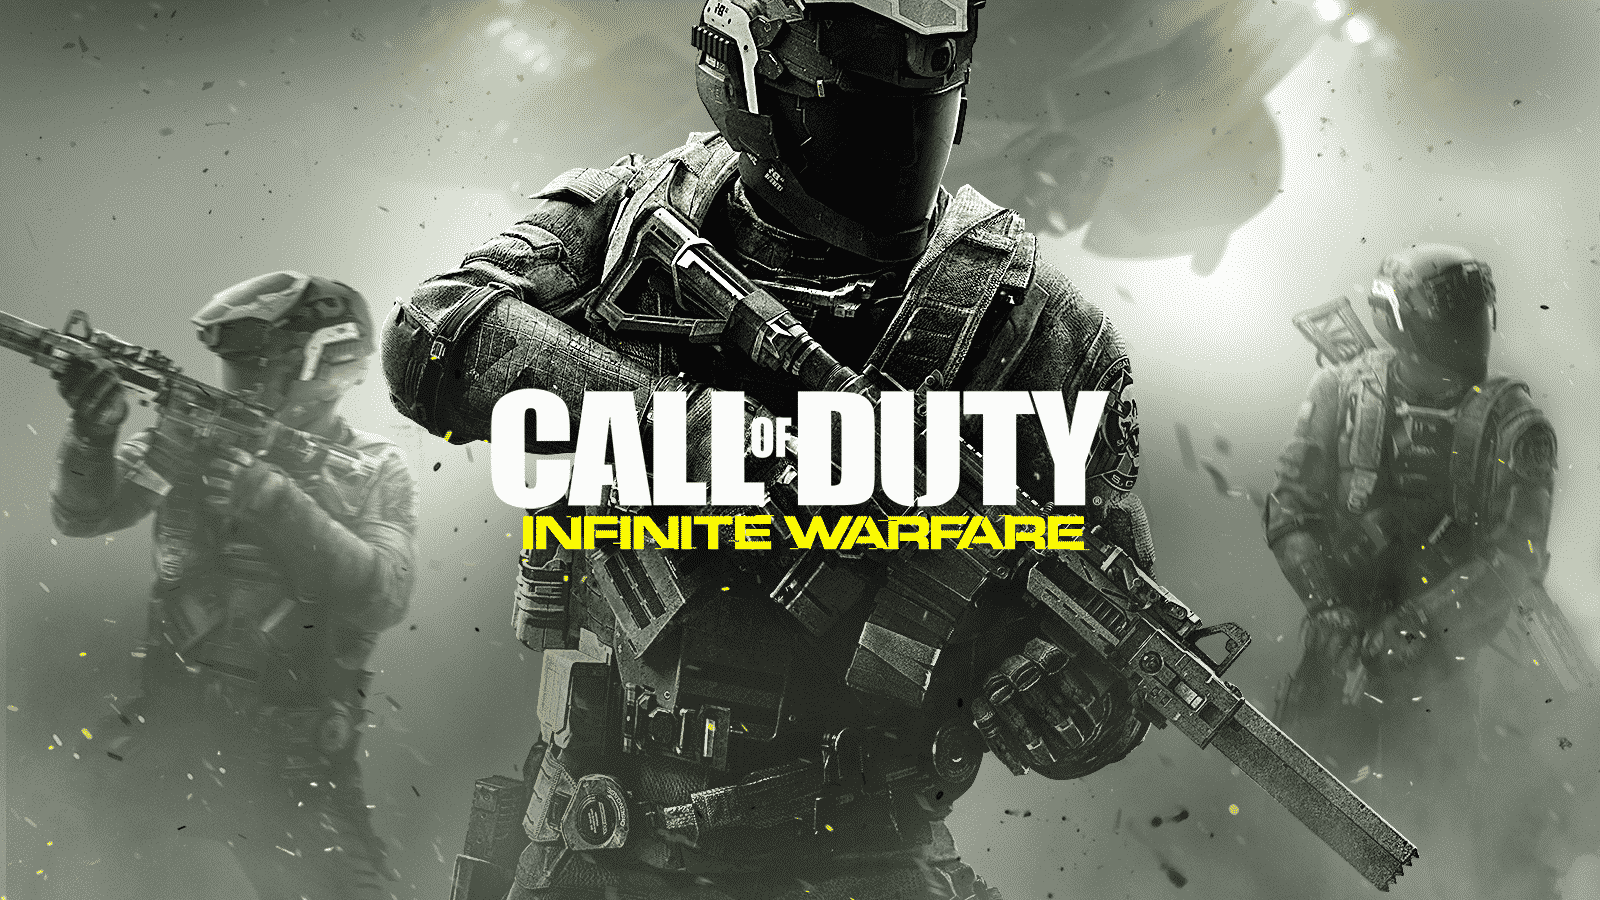 Call of Duty Infinite Warfare dévoile le contenu de sa bêta